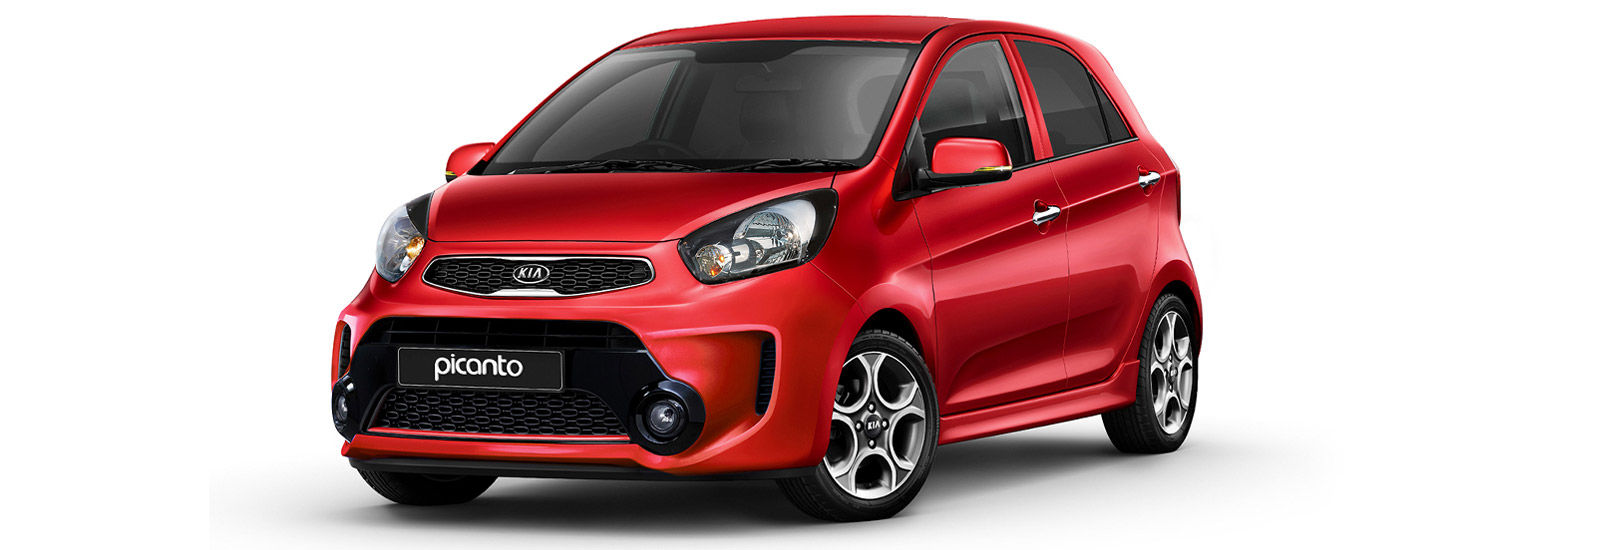 2016 kia picanto range upgrades complete guide carwow. Black Bedroom Furniture Sets. Home Design Ideas